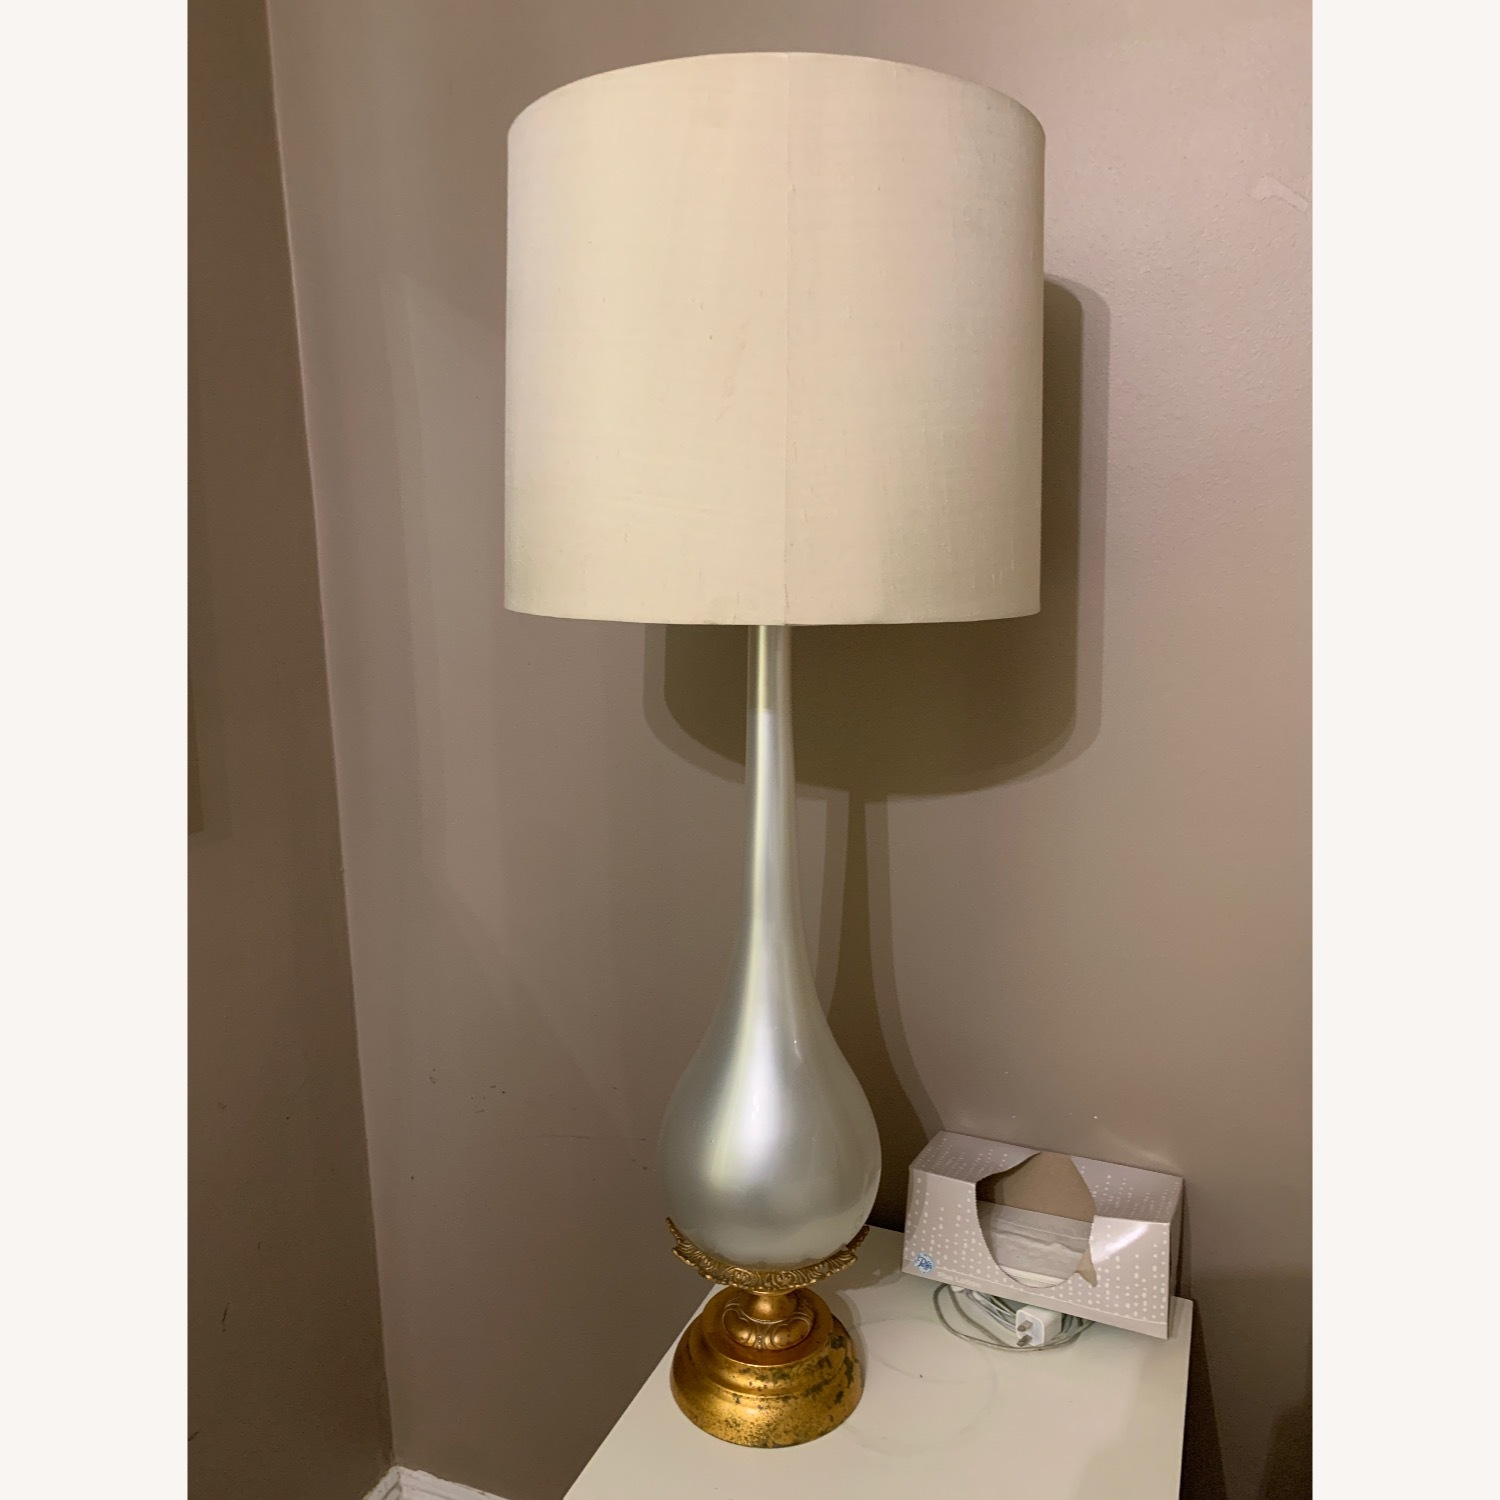 Hollywood Regency Inspired Table Lamps - image-2